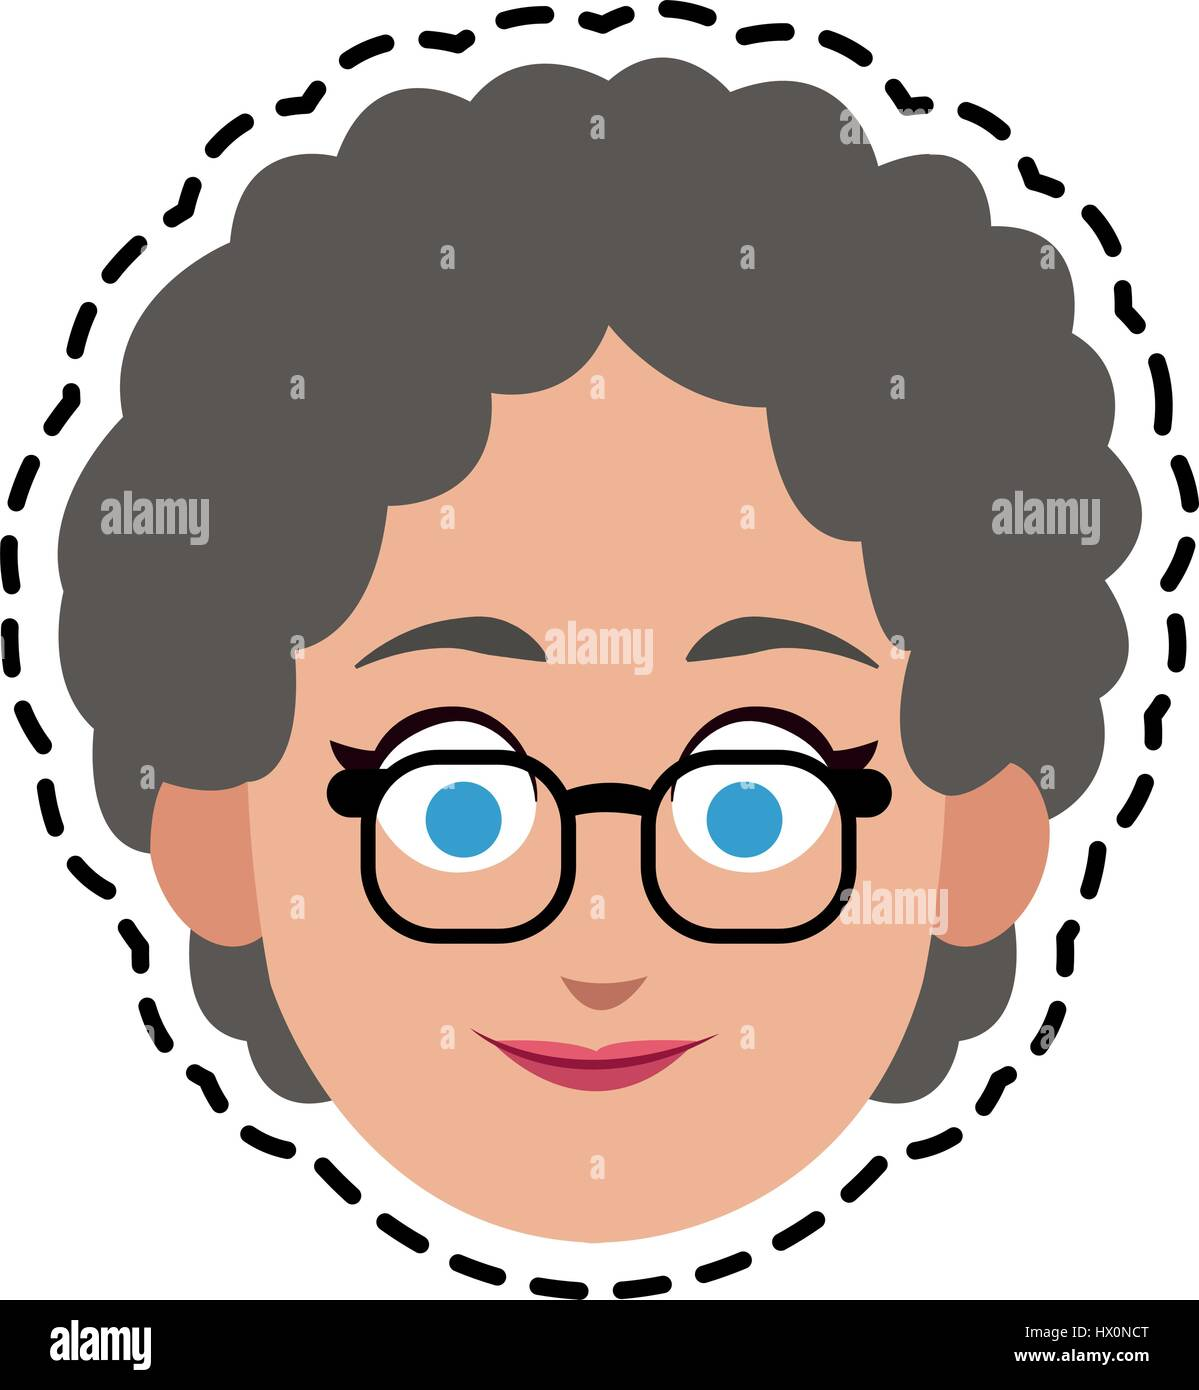 happy elderly woman with short curly hair cartoon icon